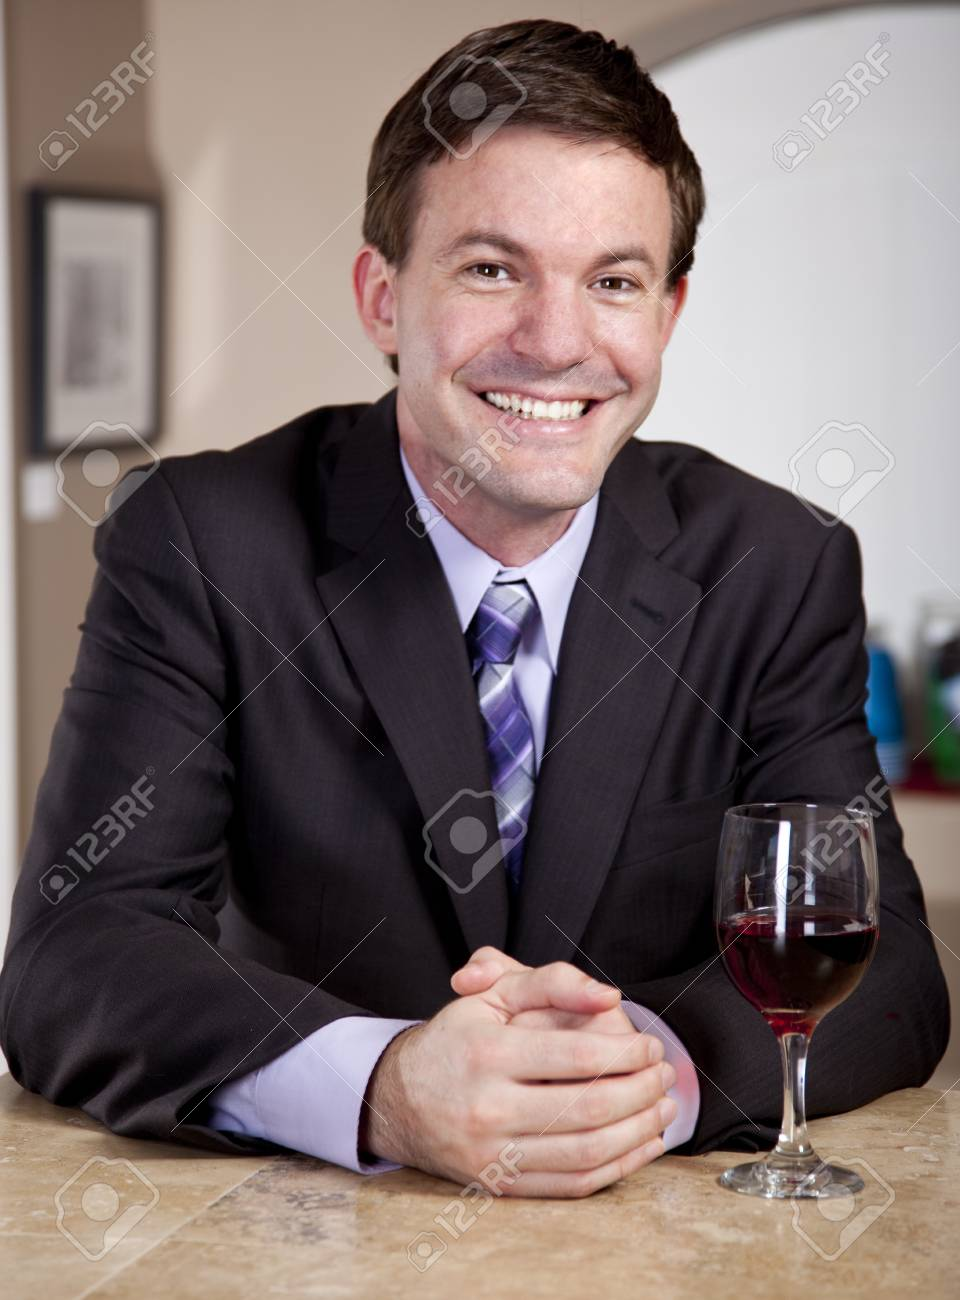 Man enjoying a Glass of Wine in a Bar Stock Photo - 16248377